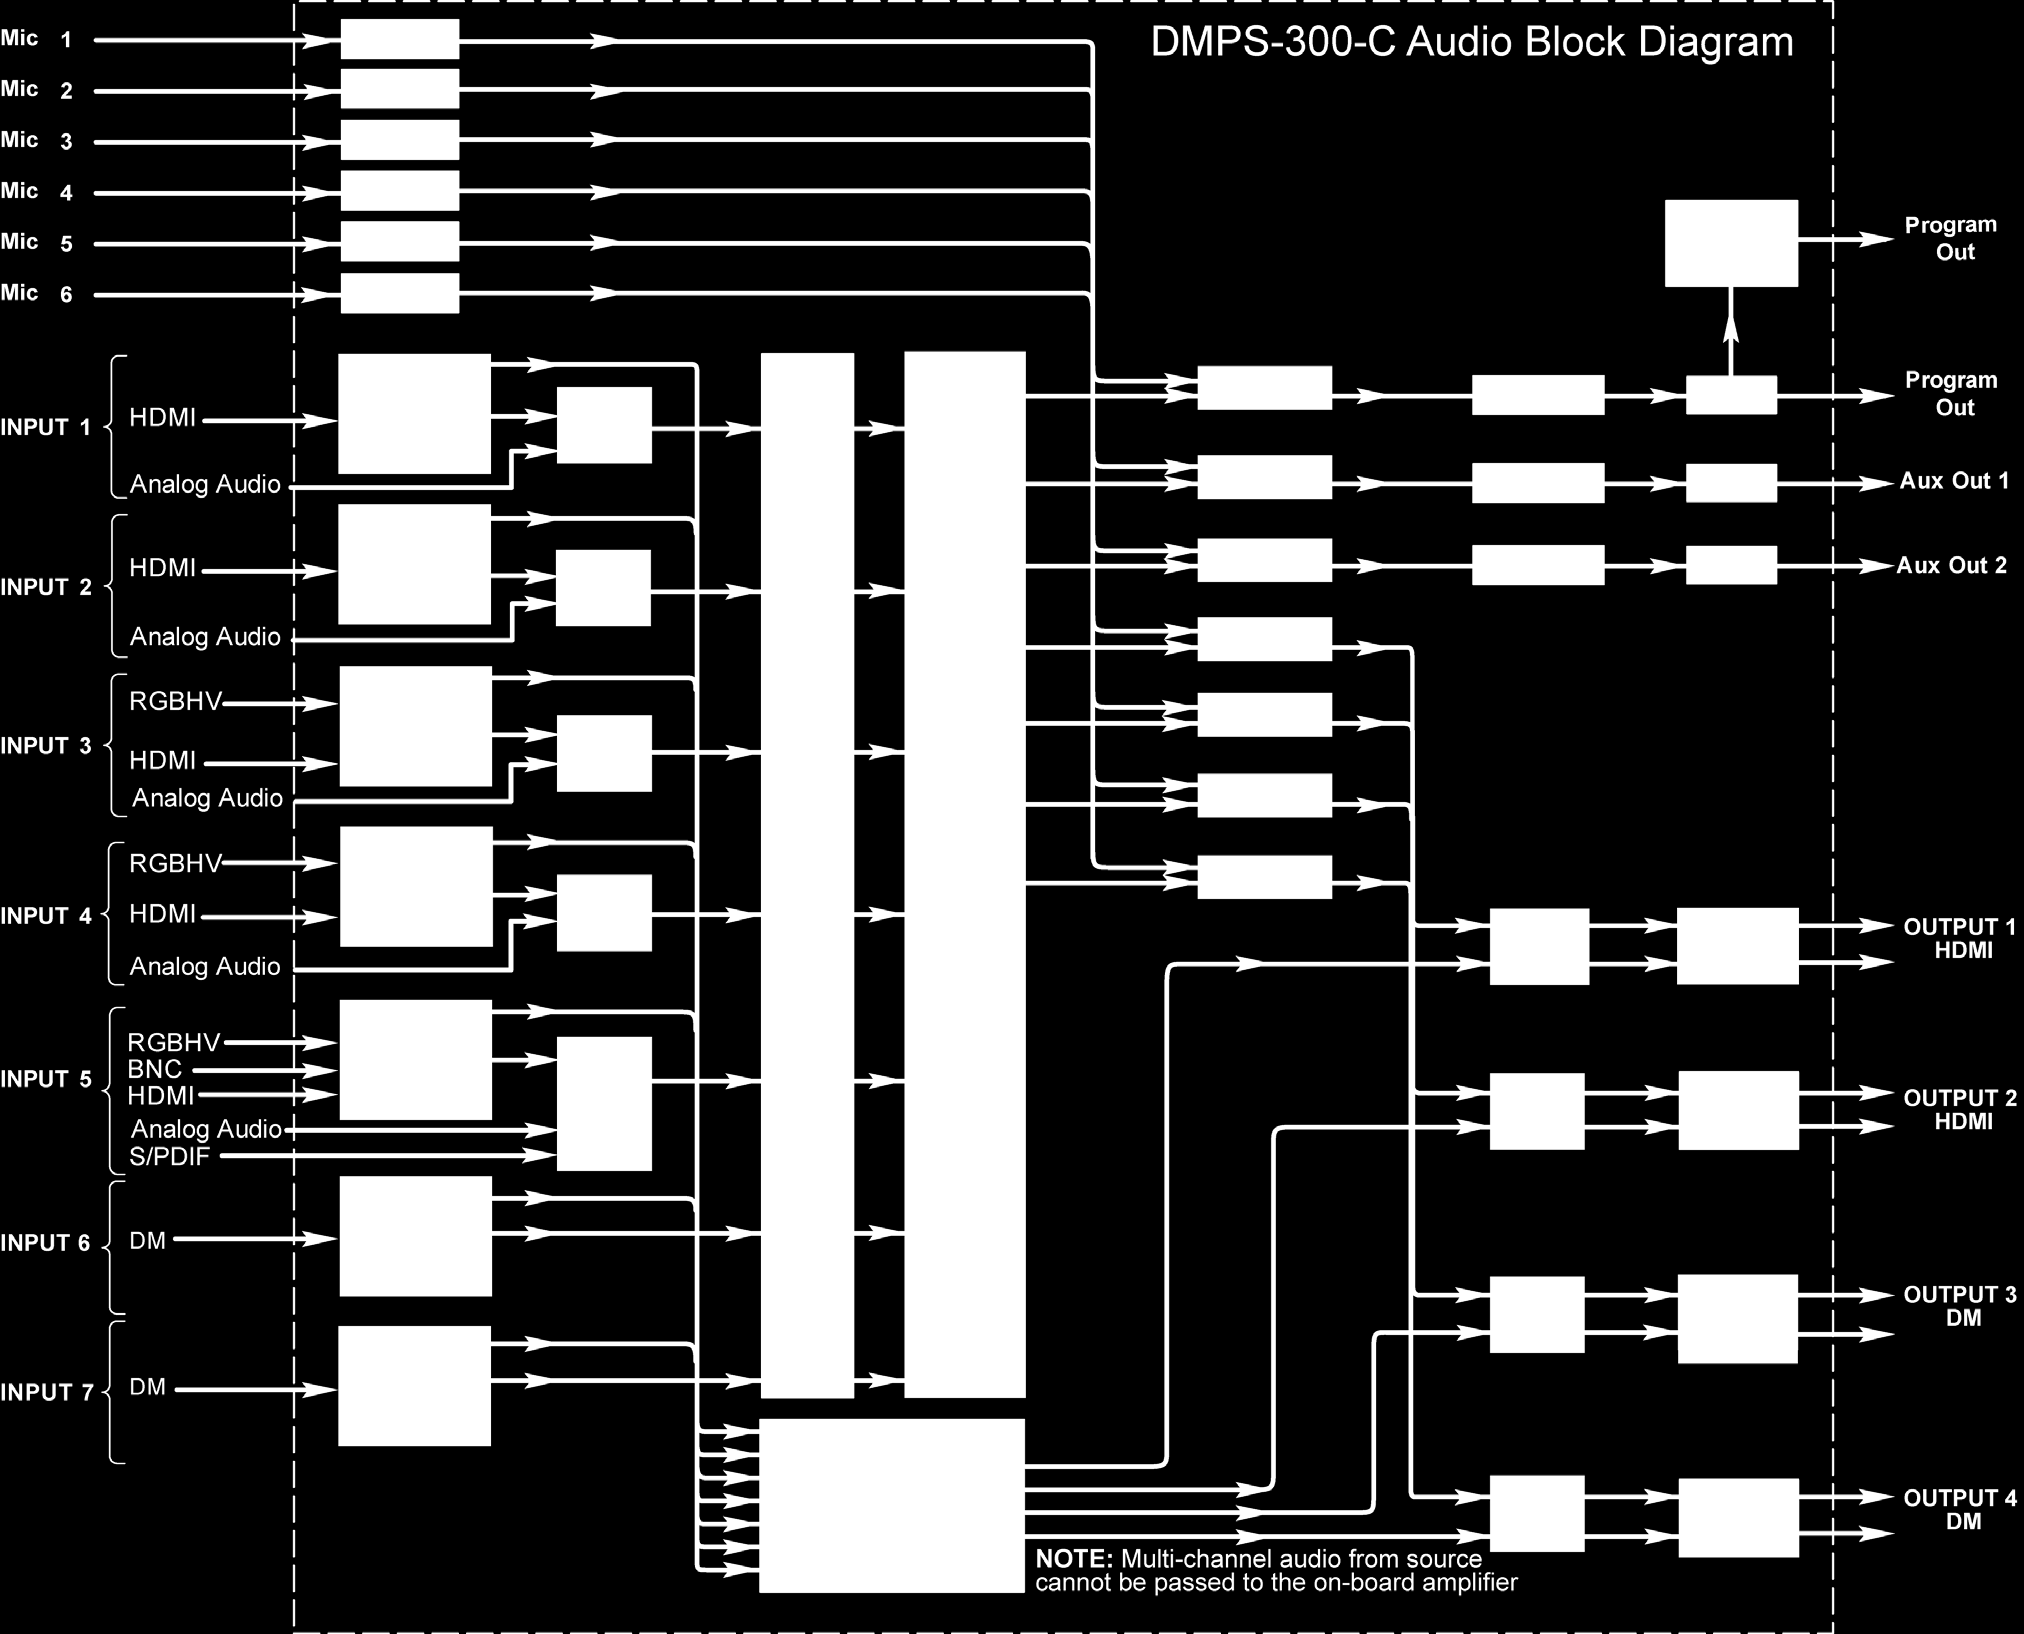 14 0 crestron dmps 100 c dmps 200 c dmps 300 c dmps 300 c aec crestron audio wiring diagram at readyjetset.co